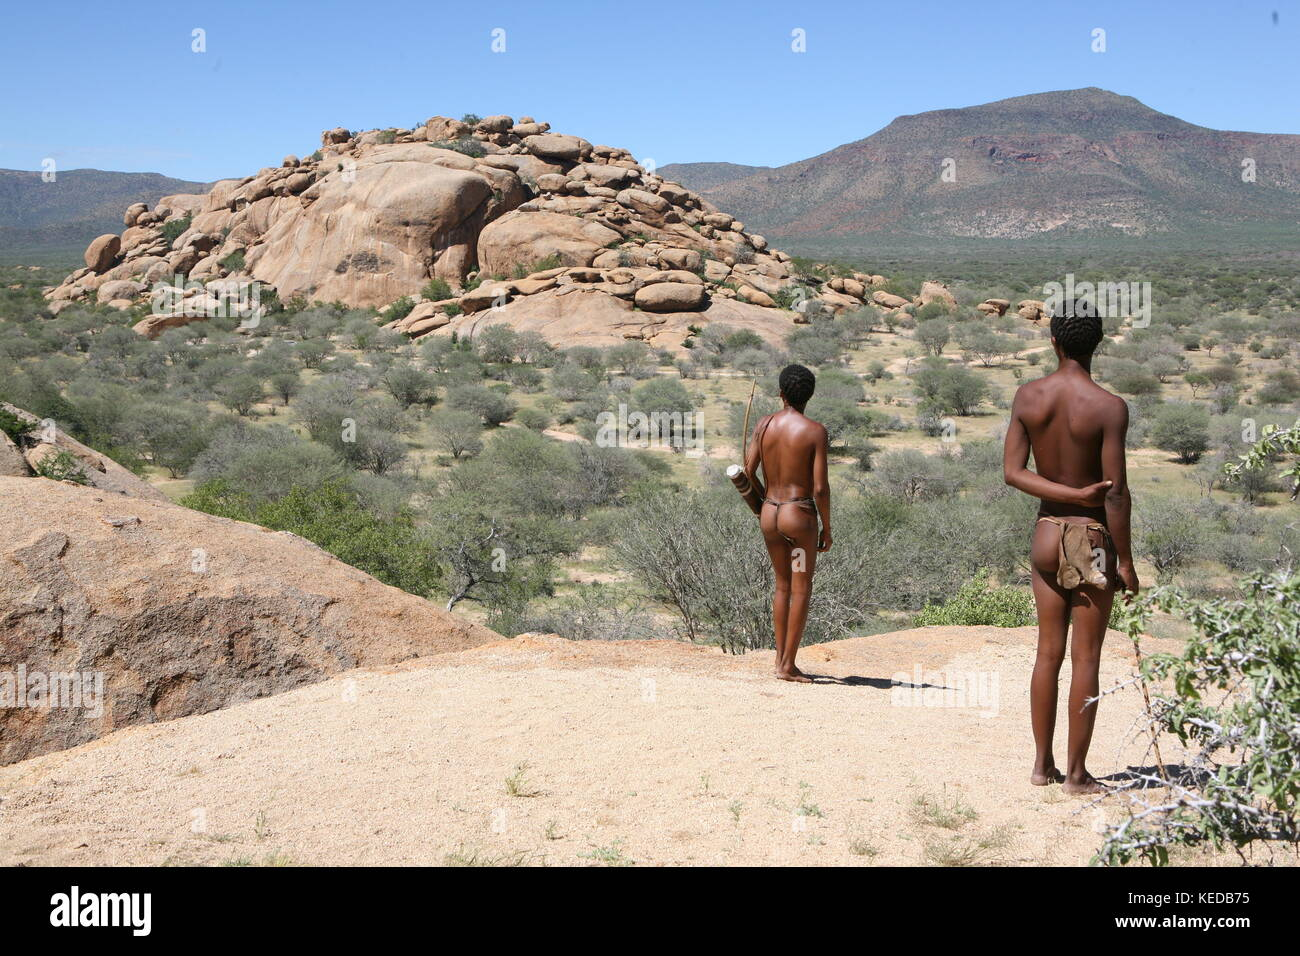 Buschmänner San people in Namibia - Volksstamm - looking for to hunt Stock Photo